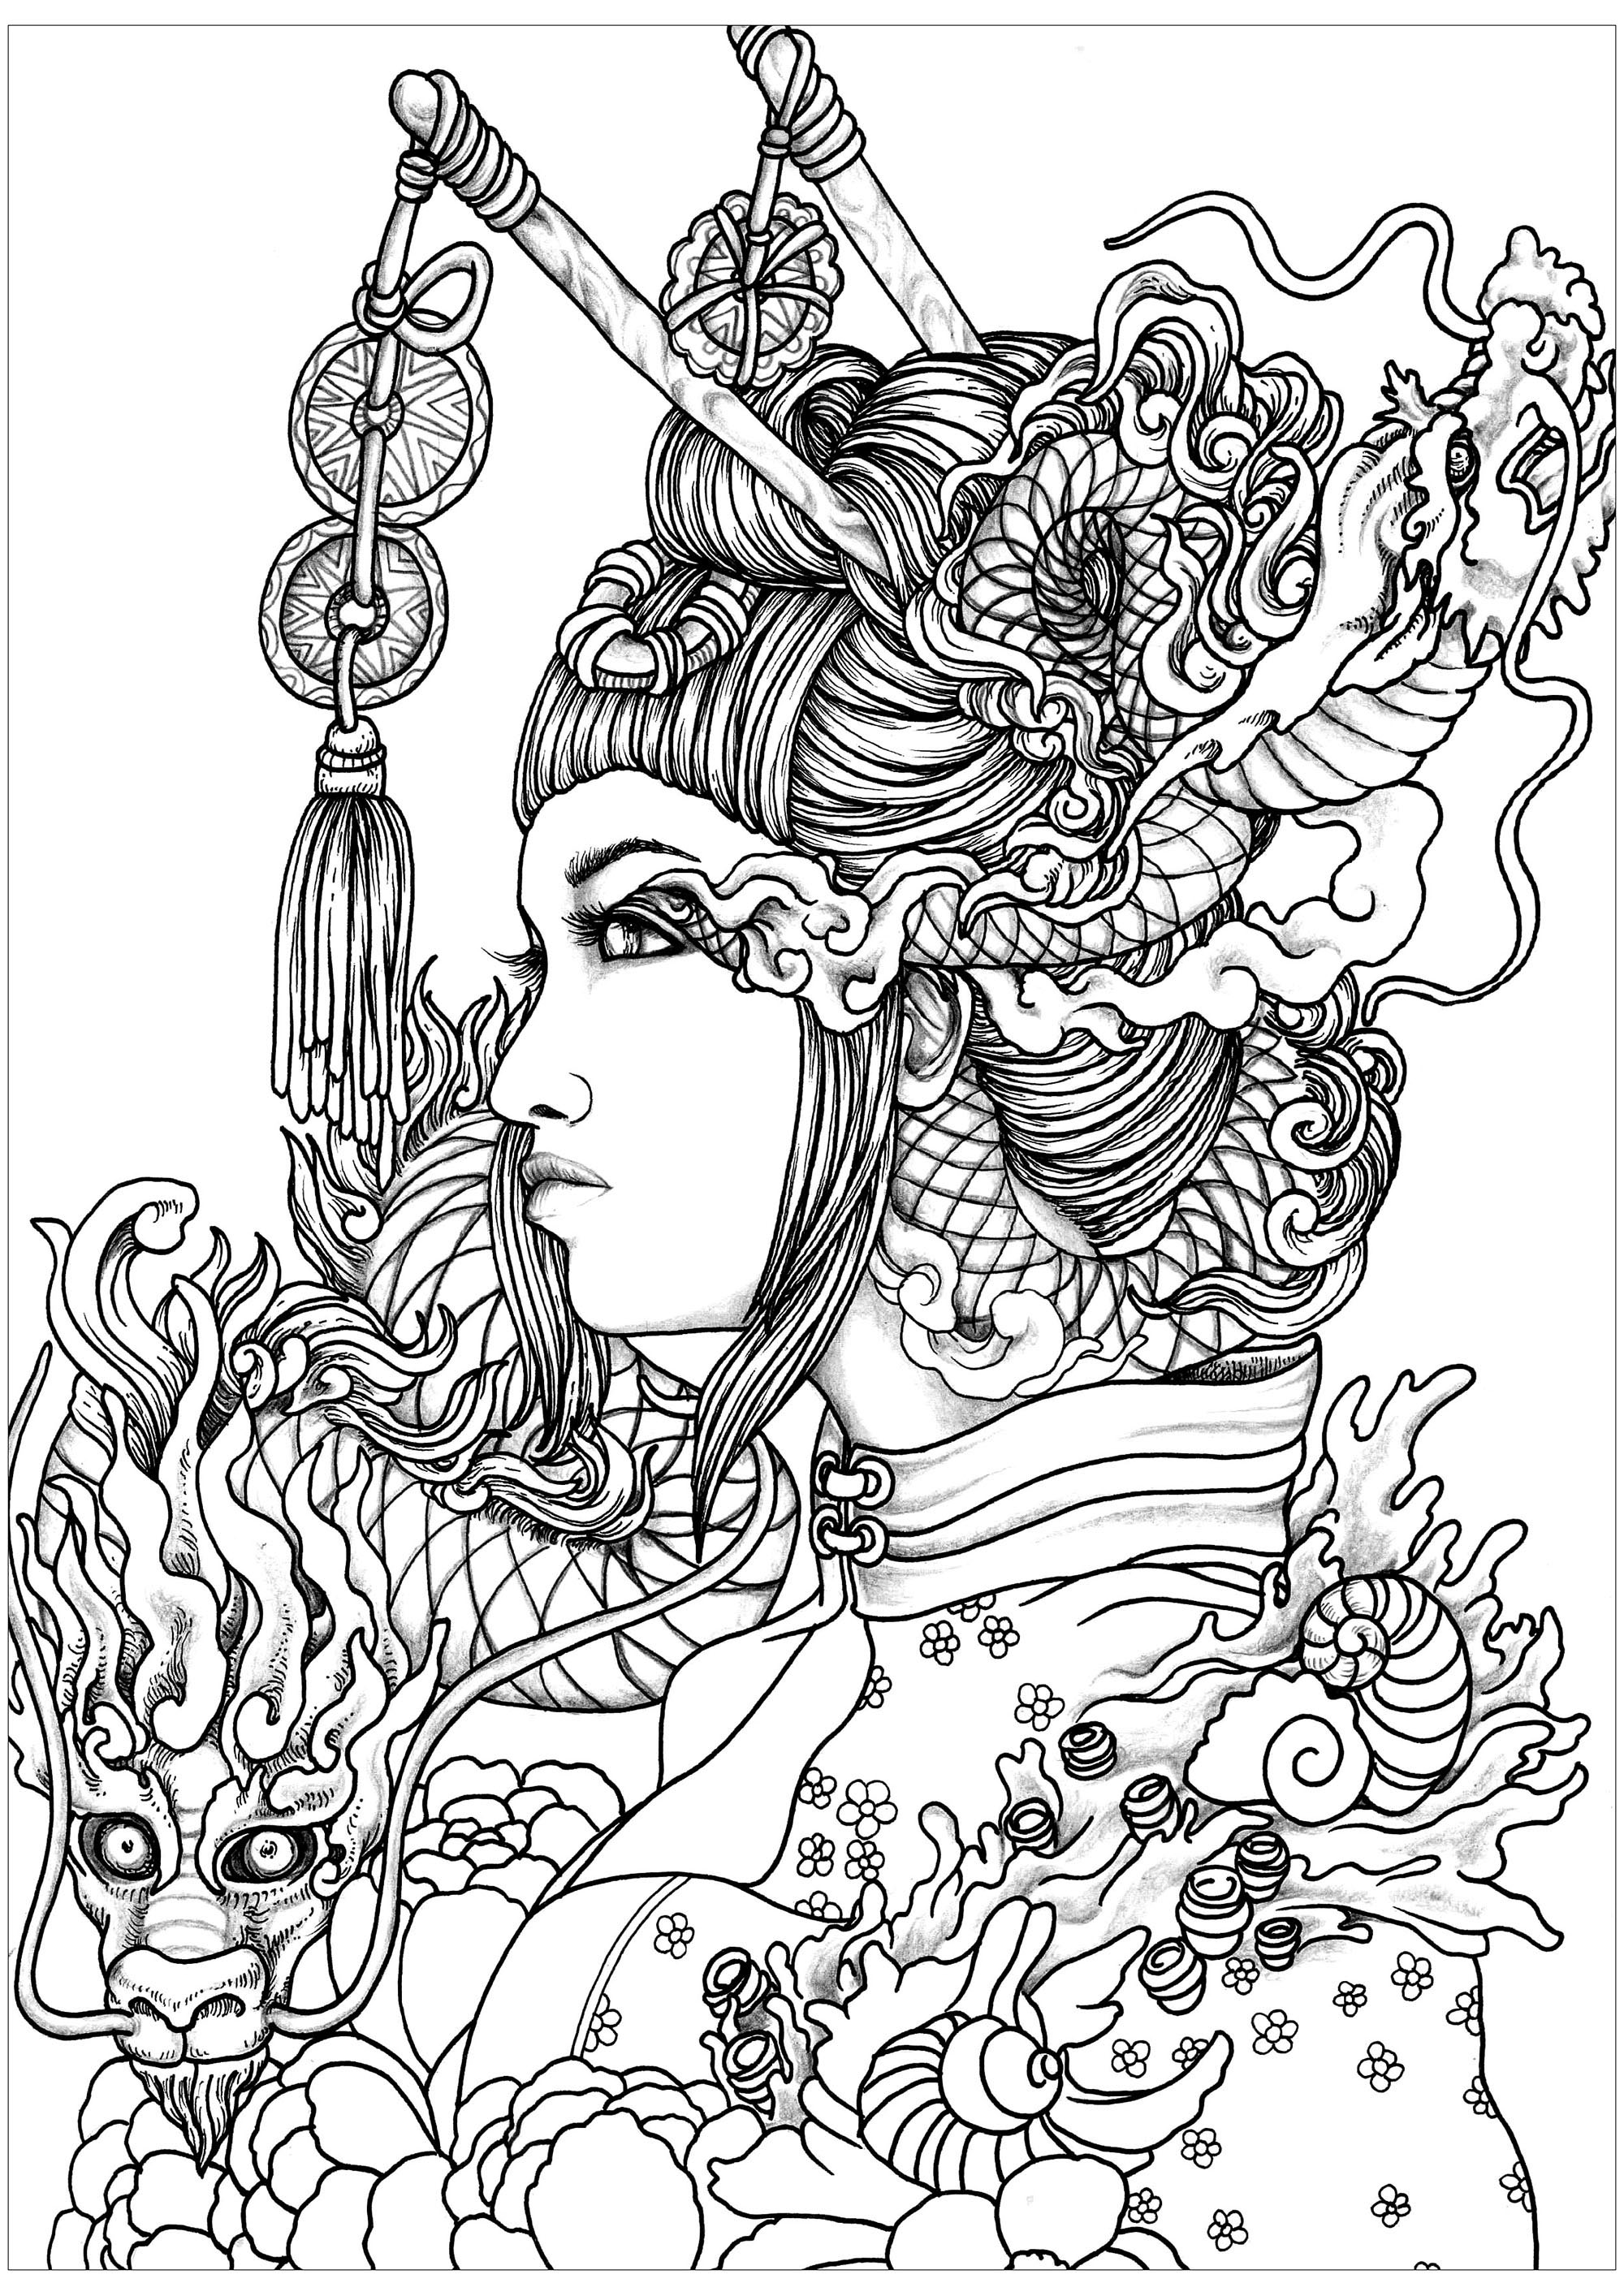 Woman - Coloring Pages for Adults